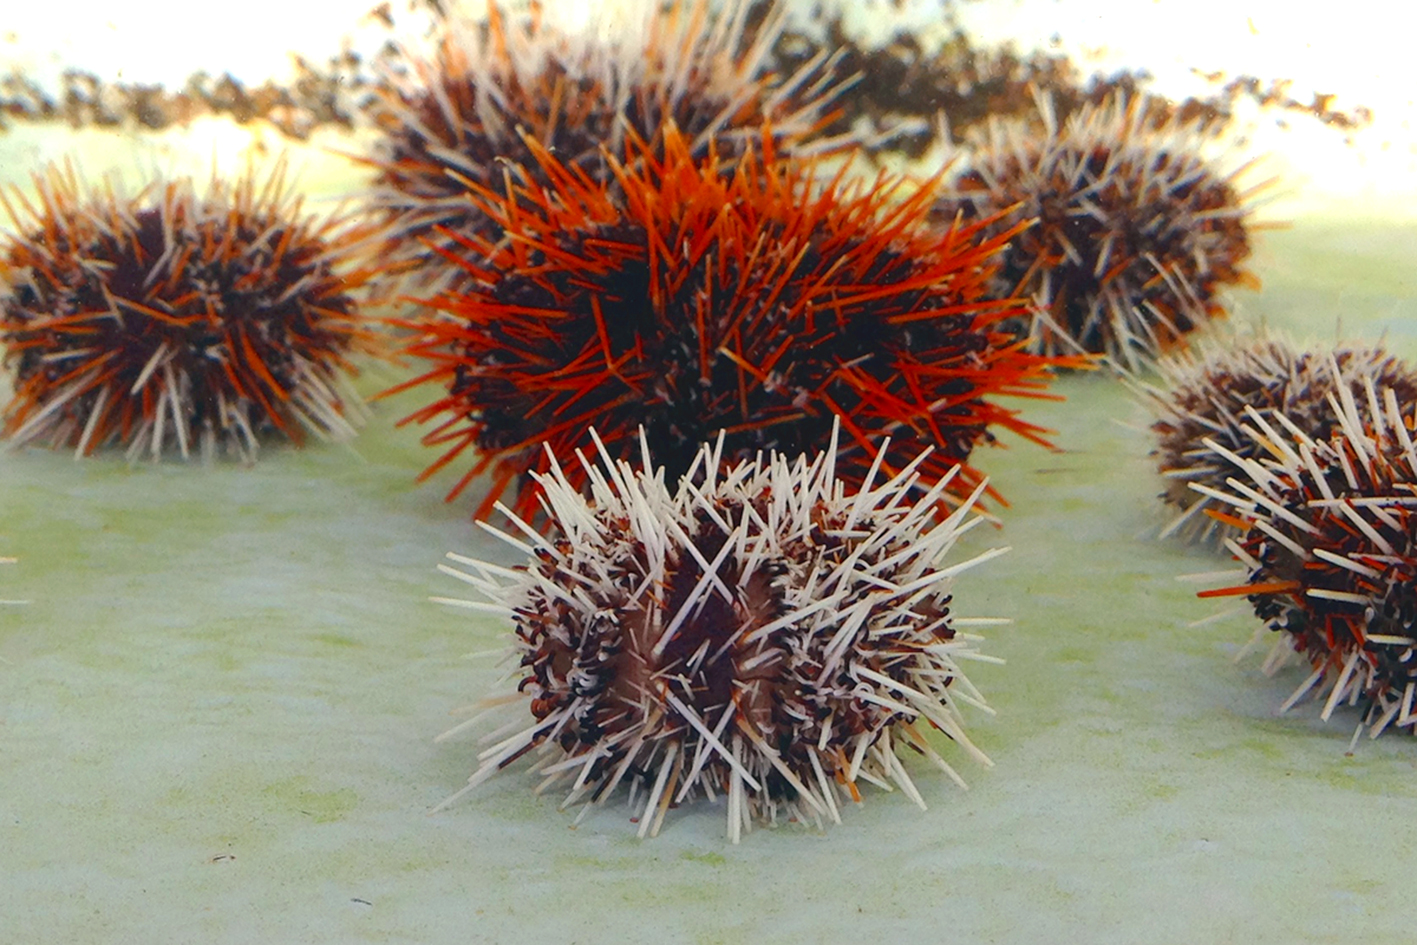 Collector sea urchin